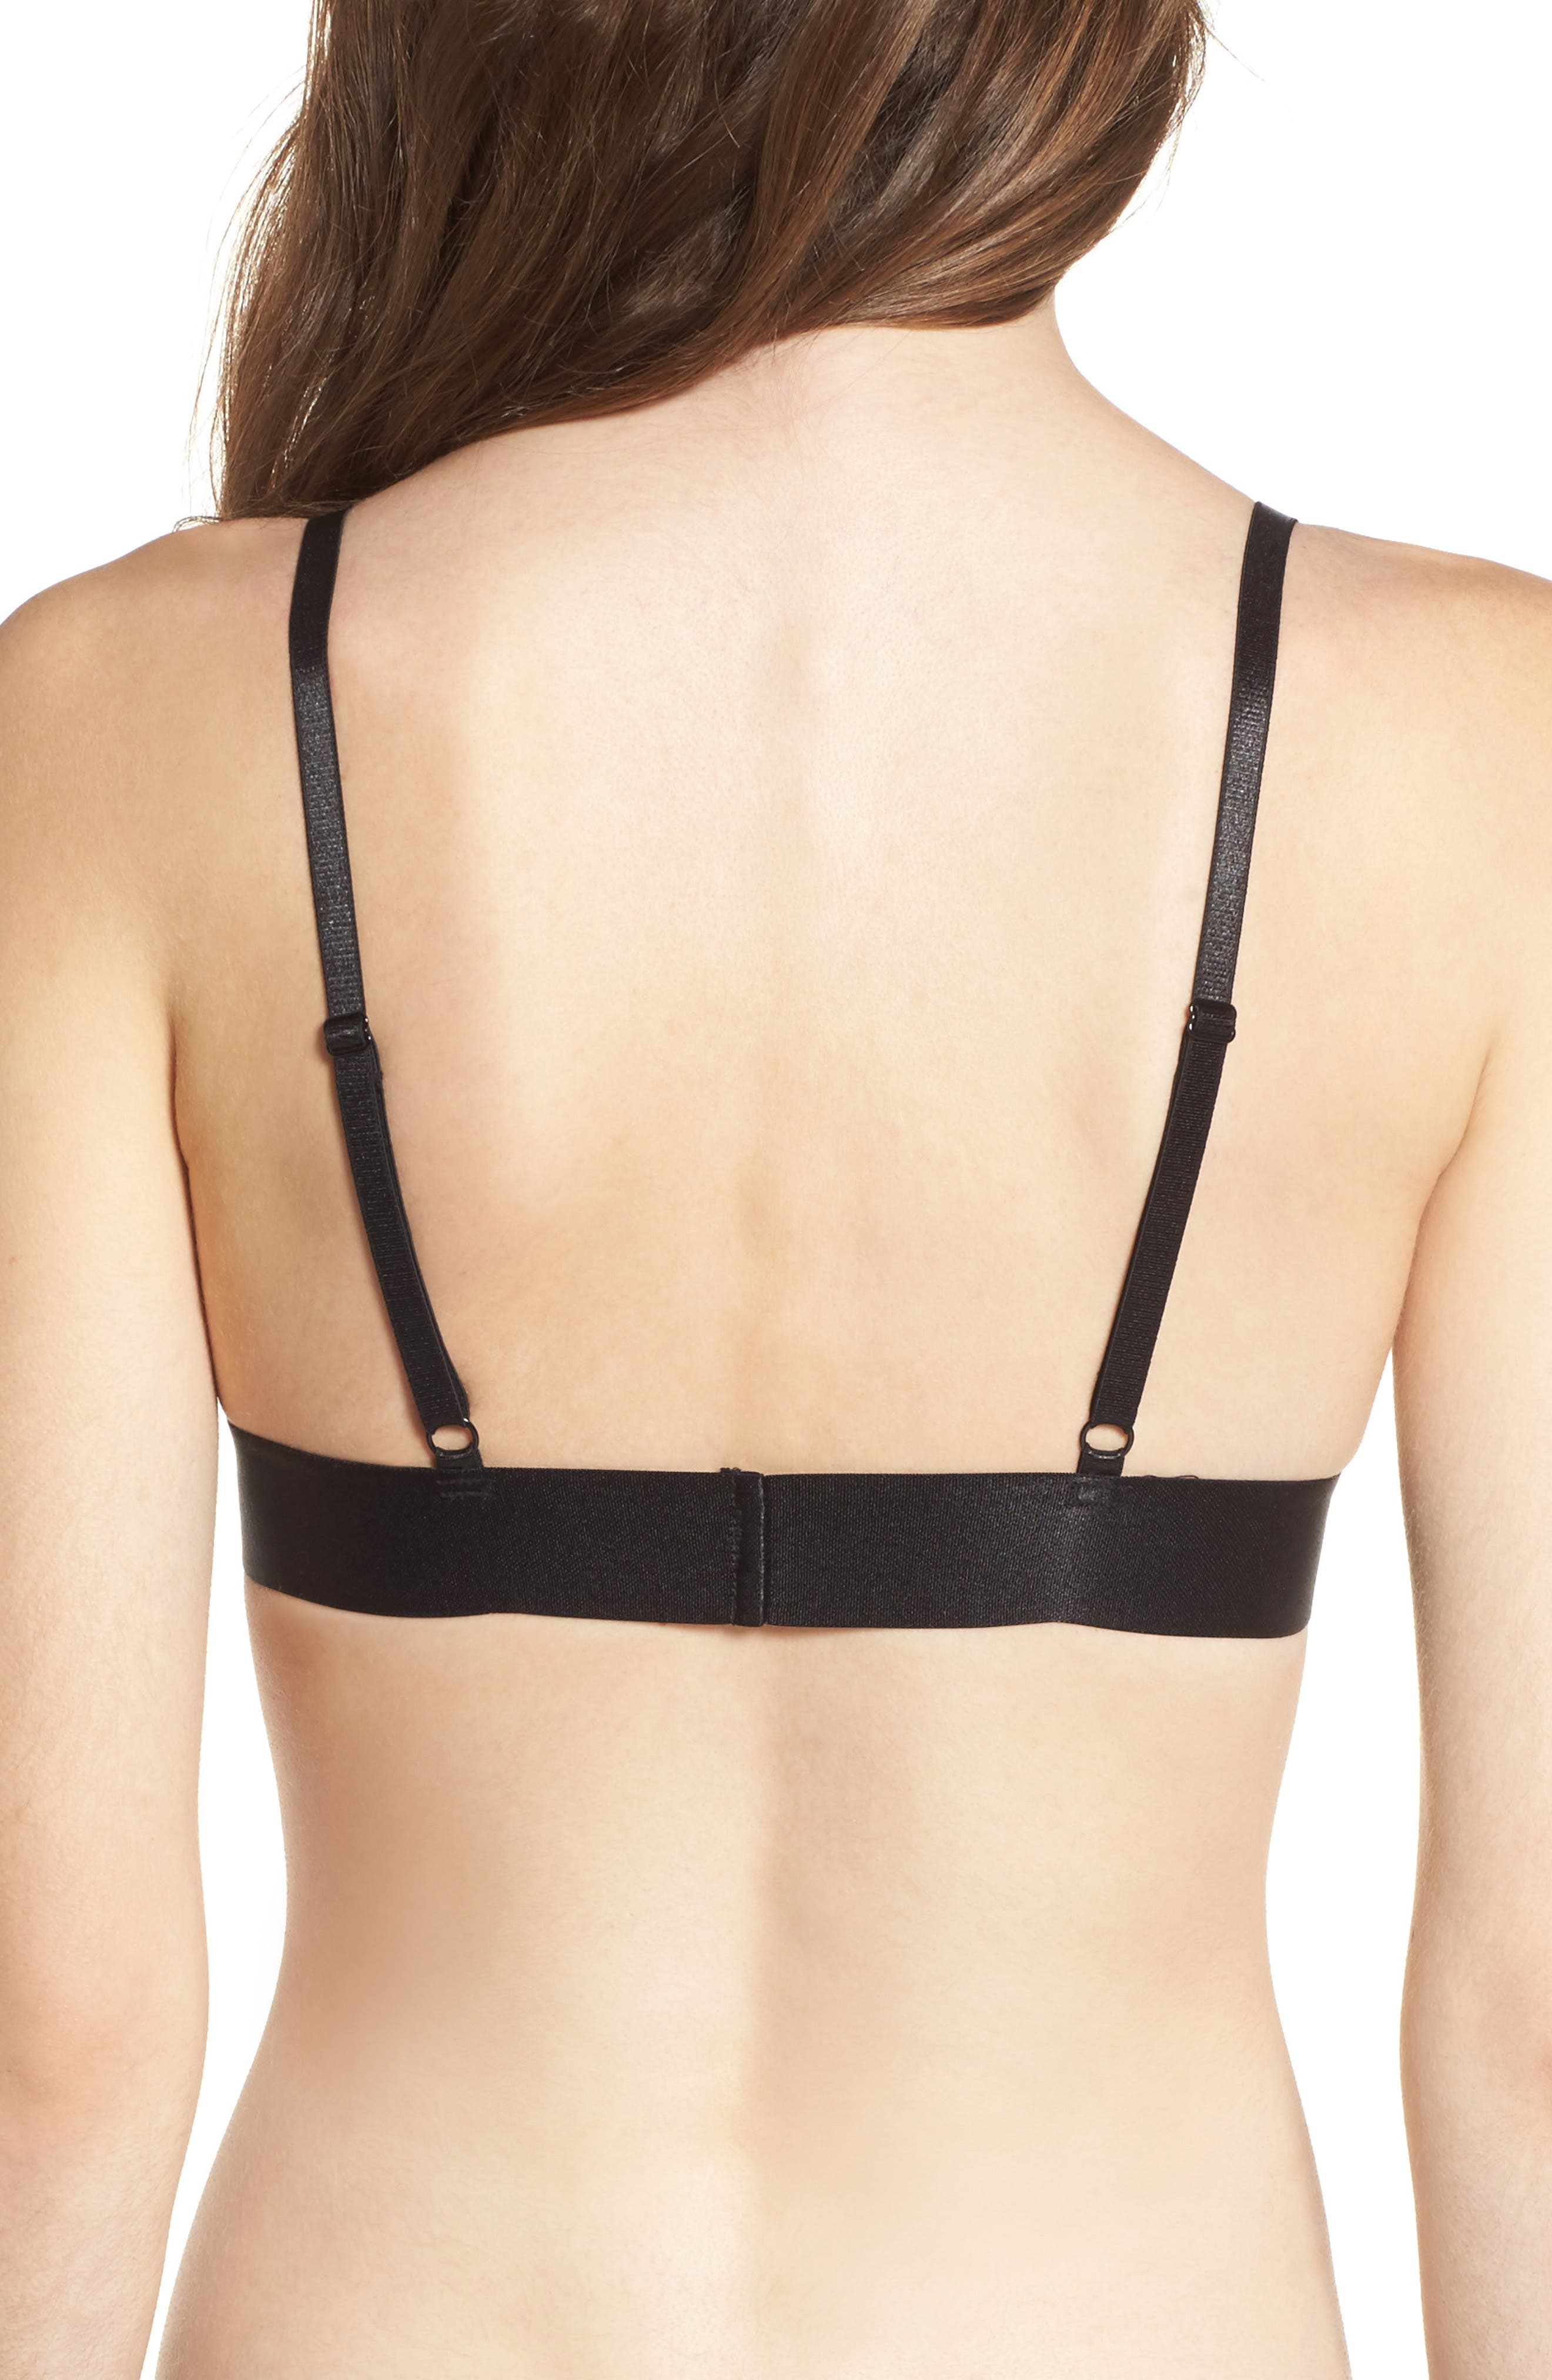 De la Rosa Bralette,                             Alternate thumbnail 3, color,                             Black